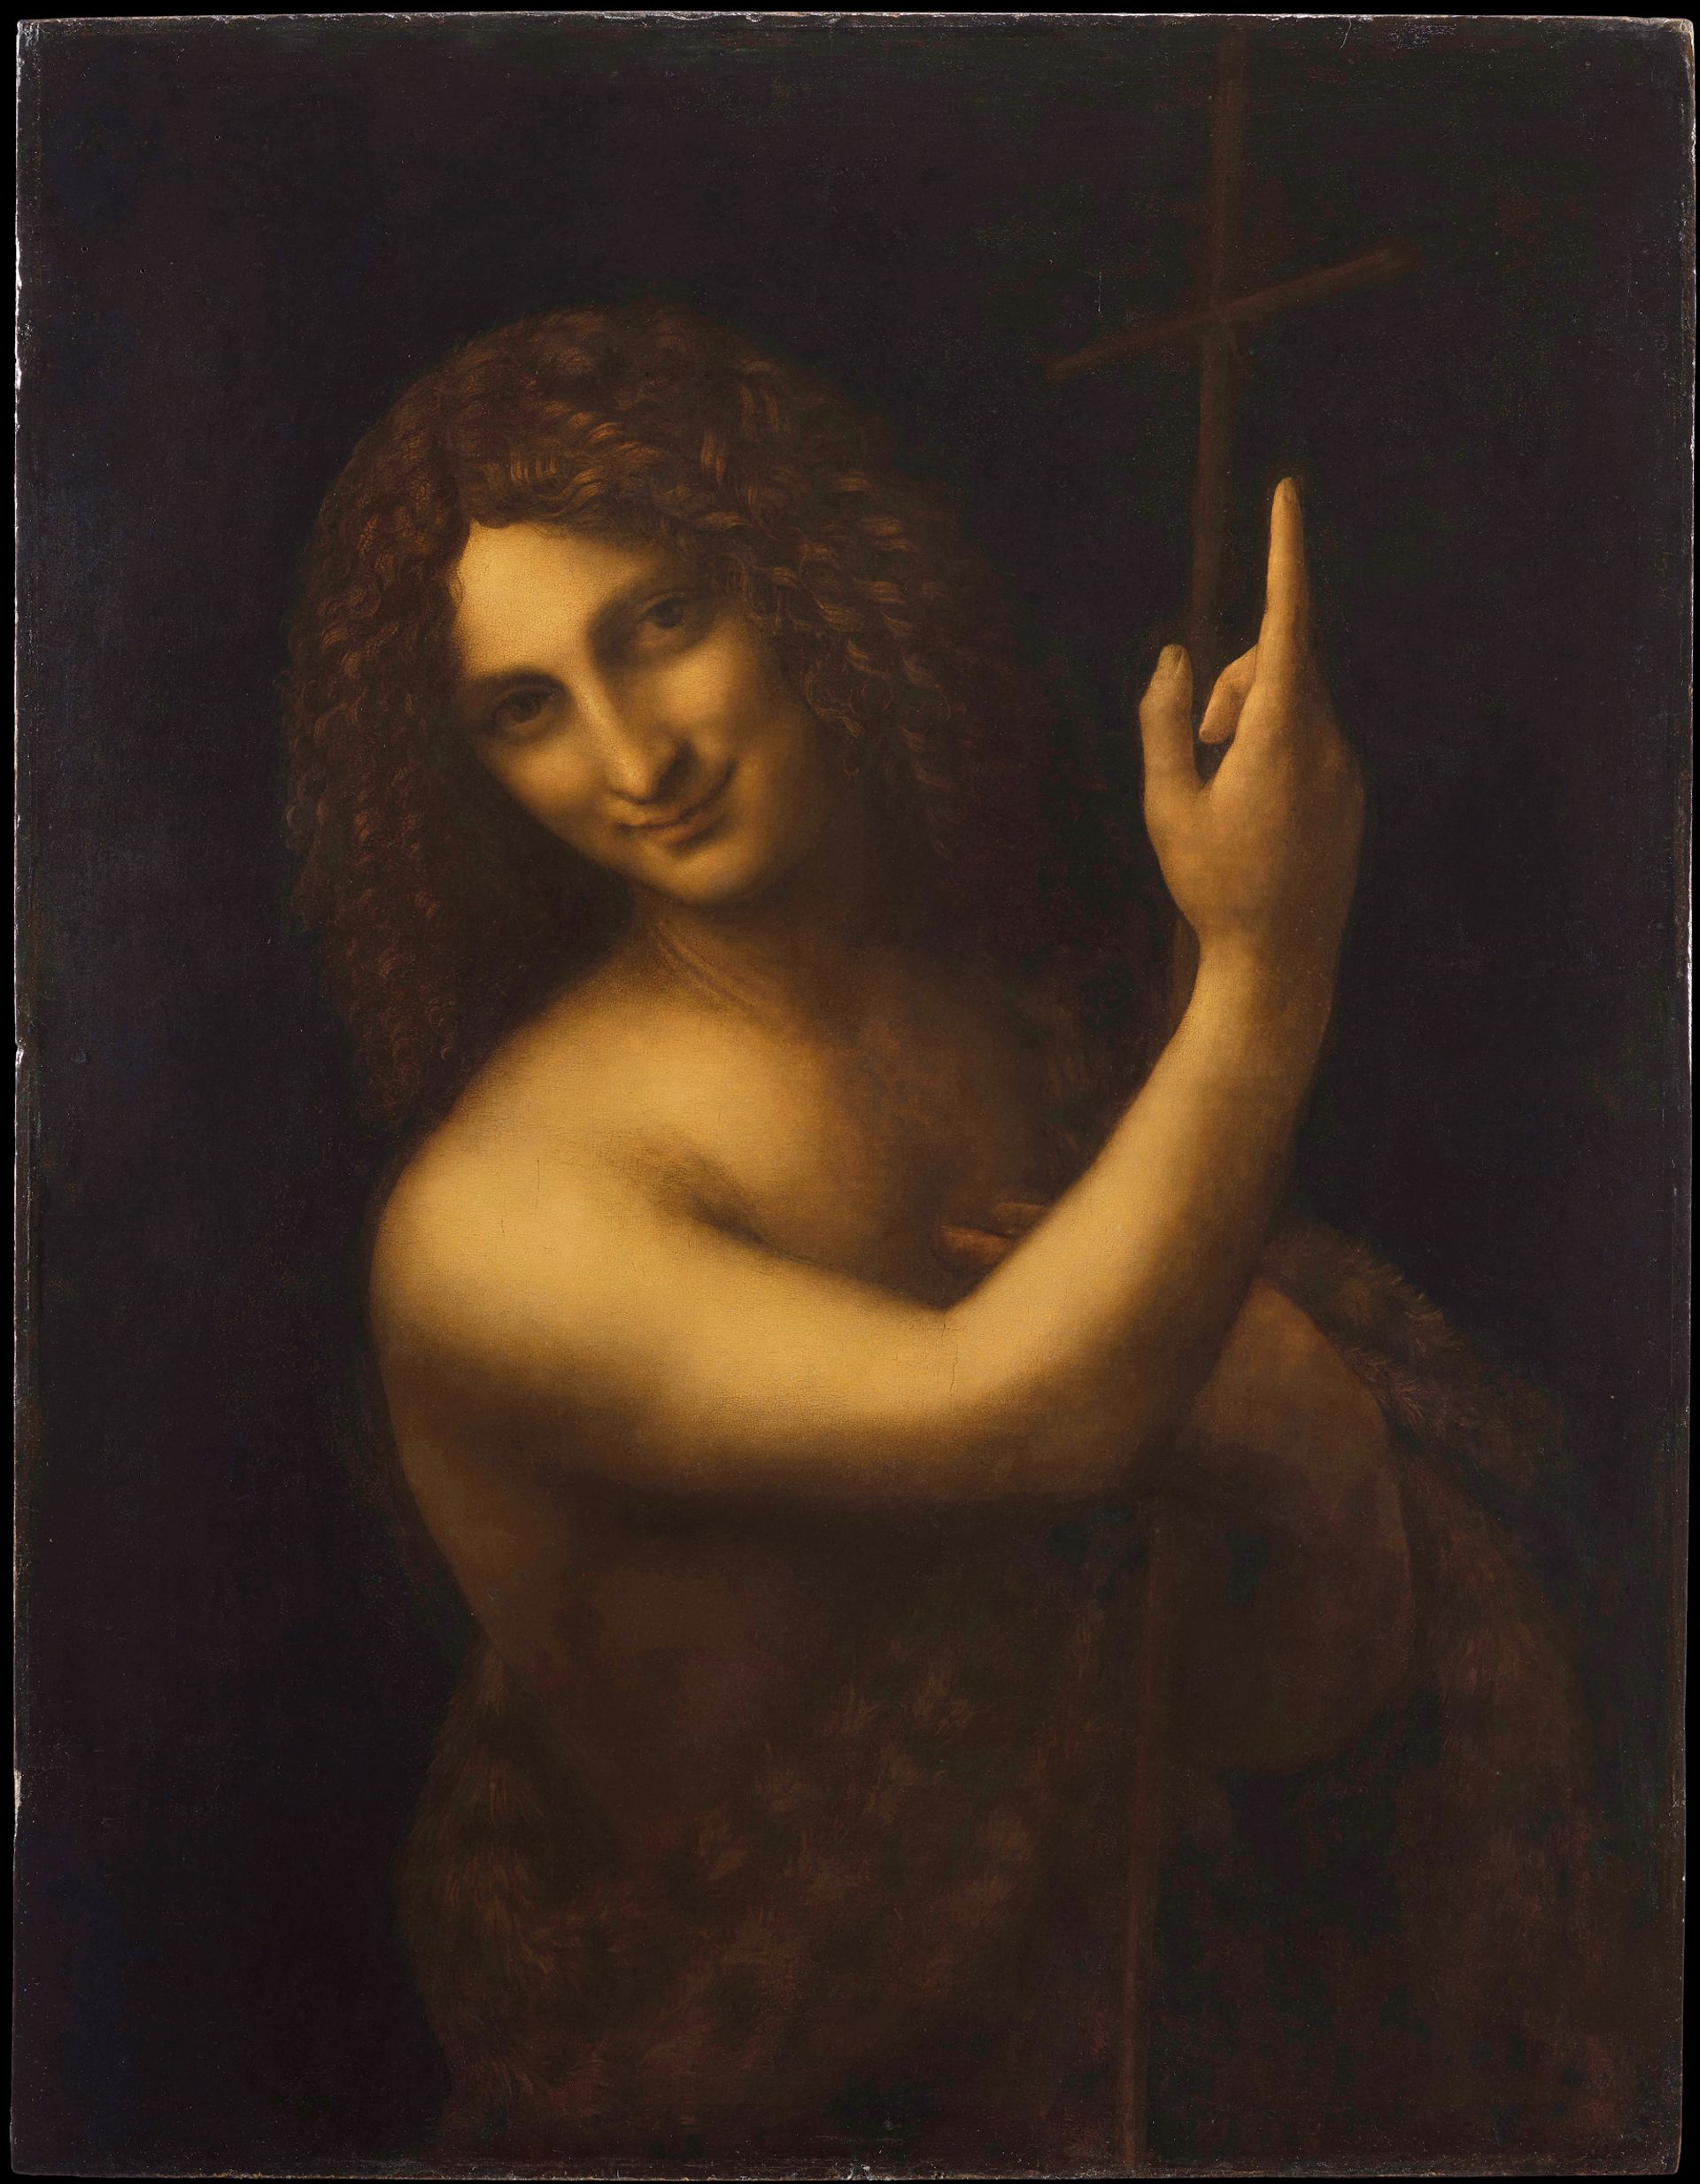 """St John the Baptist, painted between 1513 and 1516, will be shown in the section of the exhibition titled """"la vie"""" Image: courtesy of RMN-Grand Palais (Musée du Louvre). Photo © Michel Urtado"""